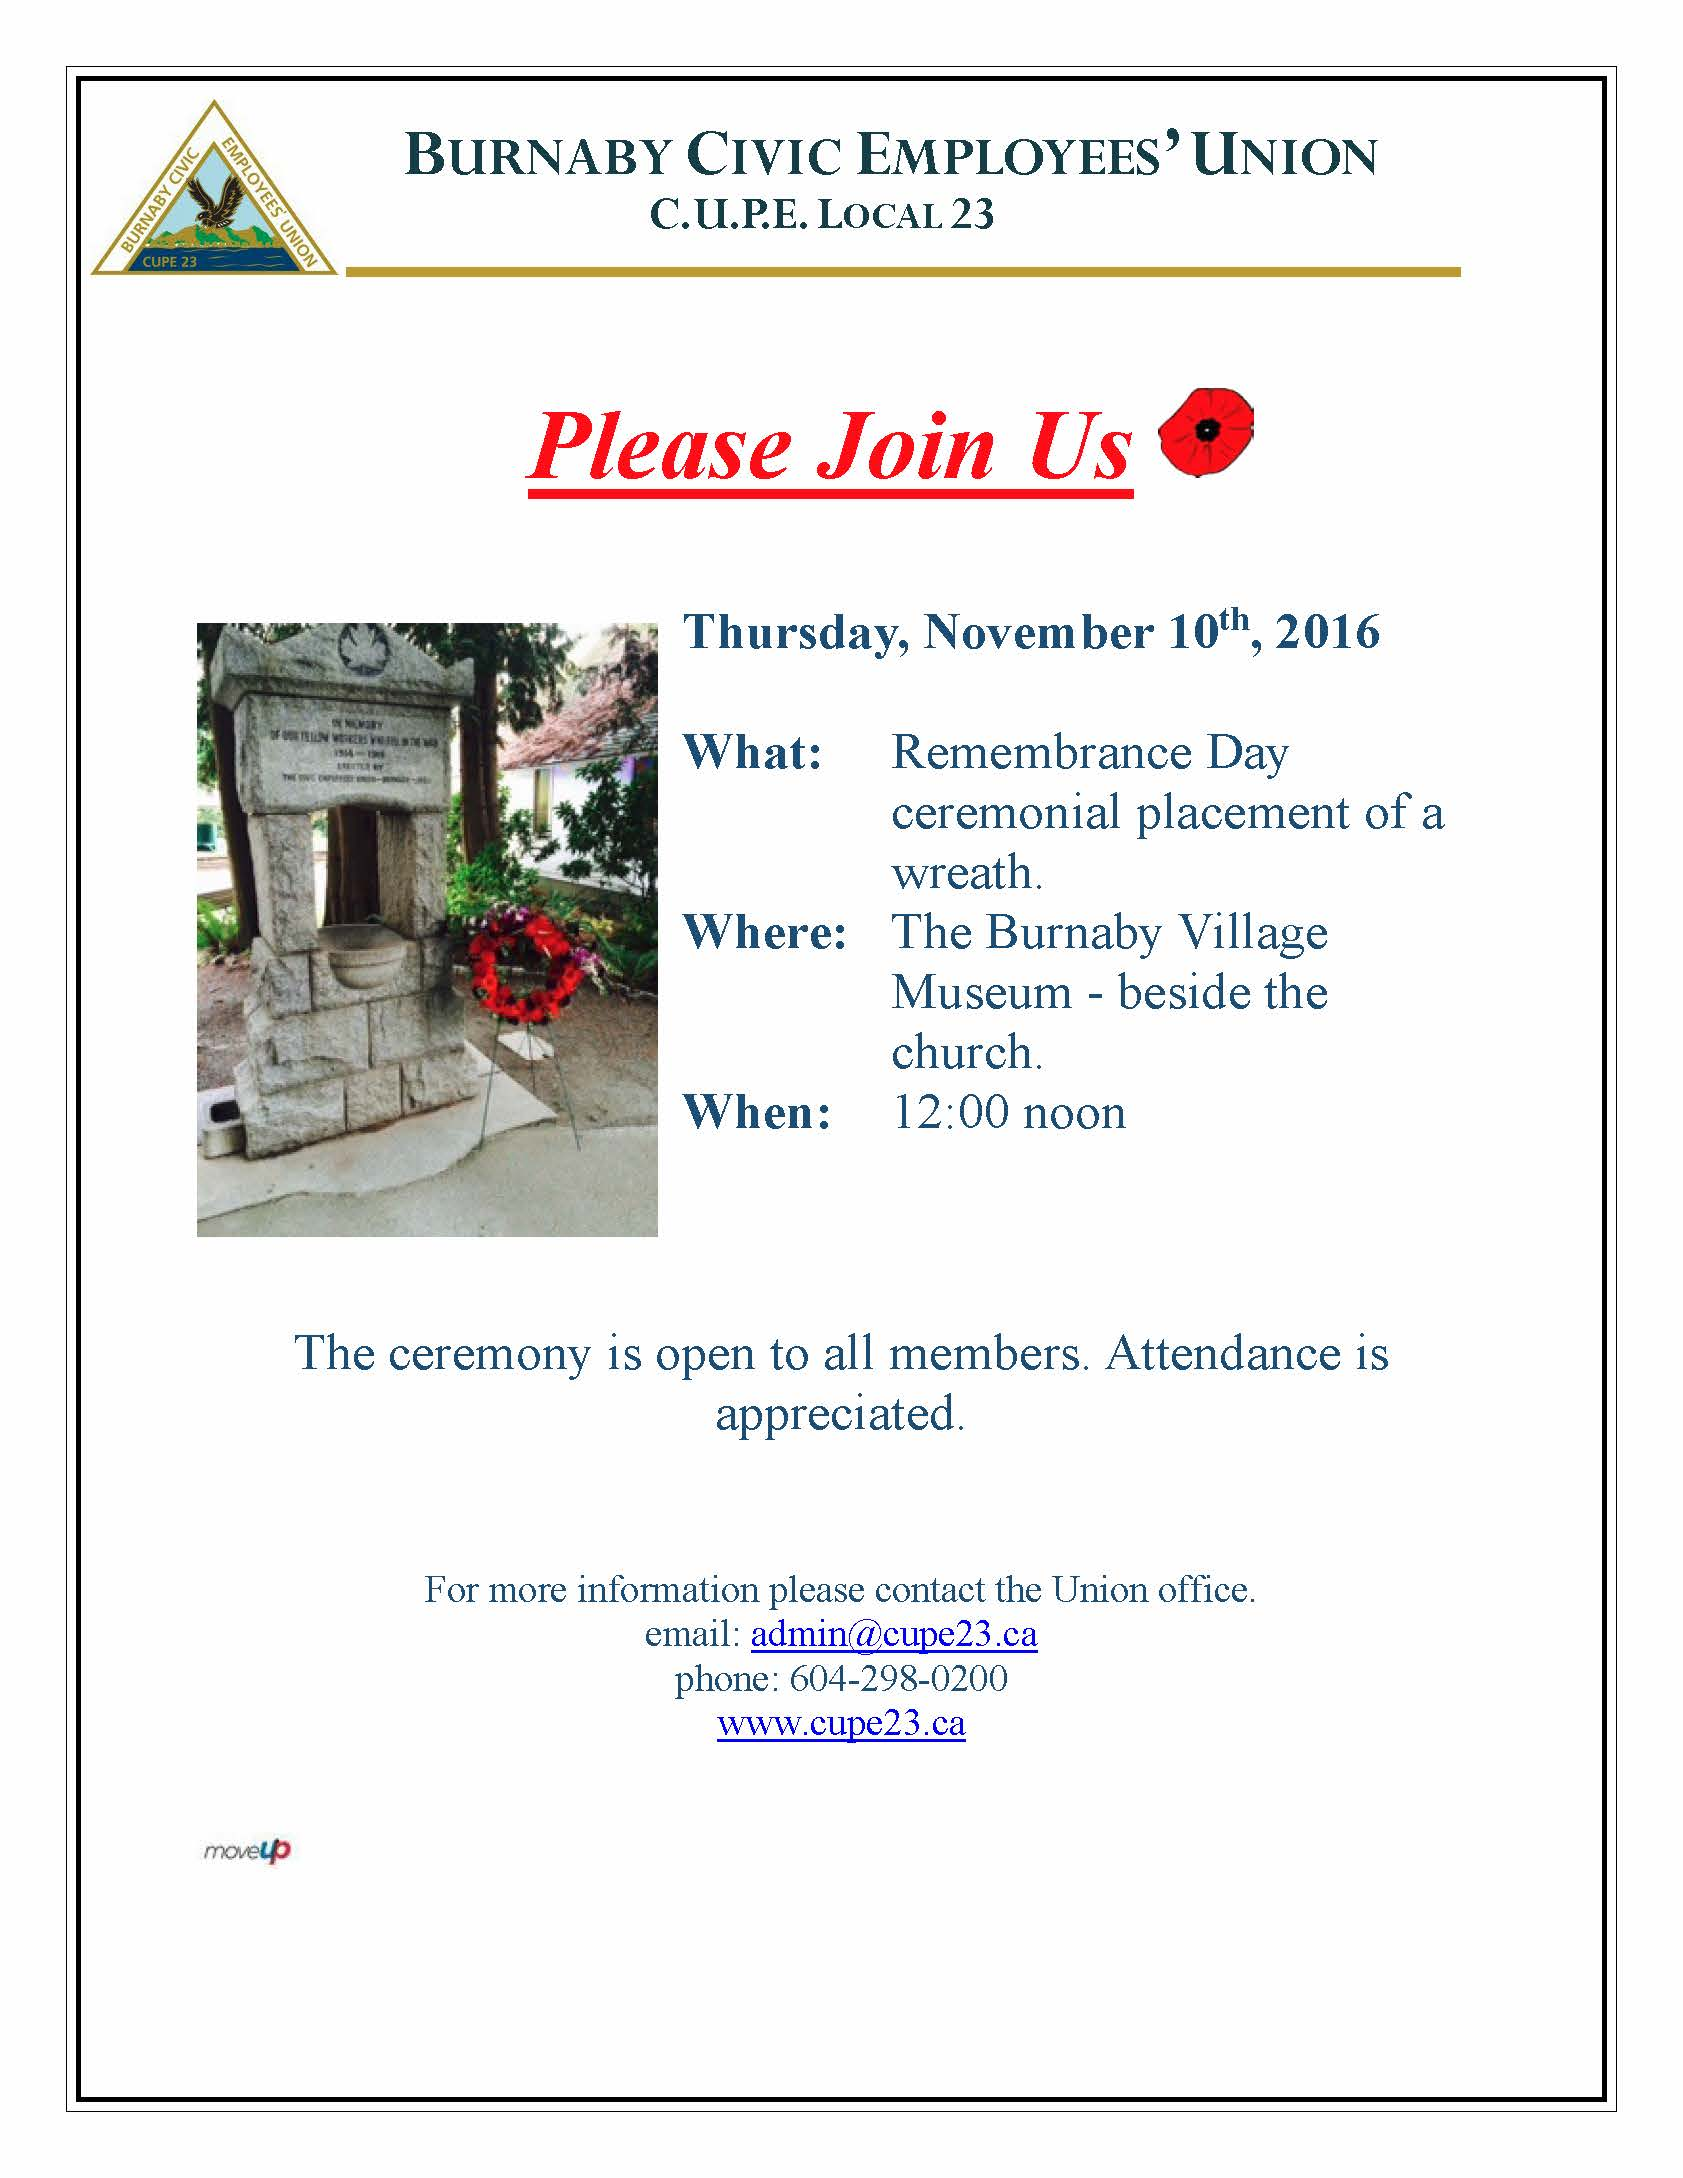 remembrance-day-notice-2016